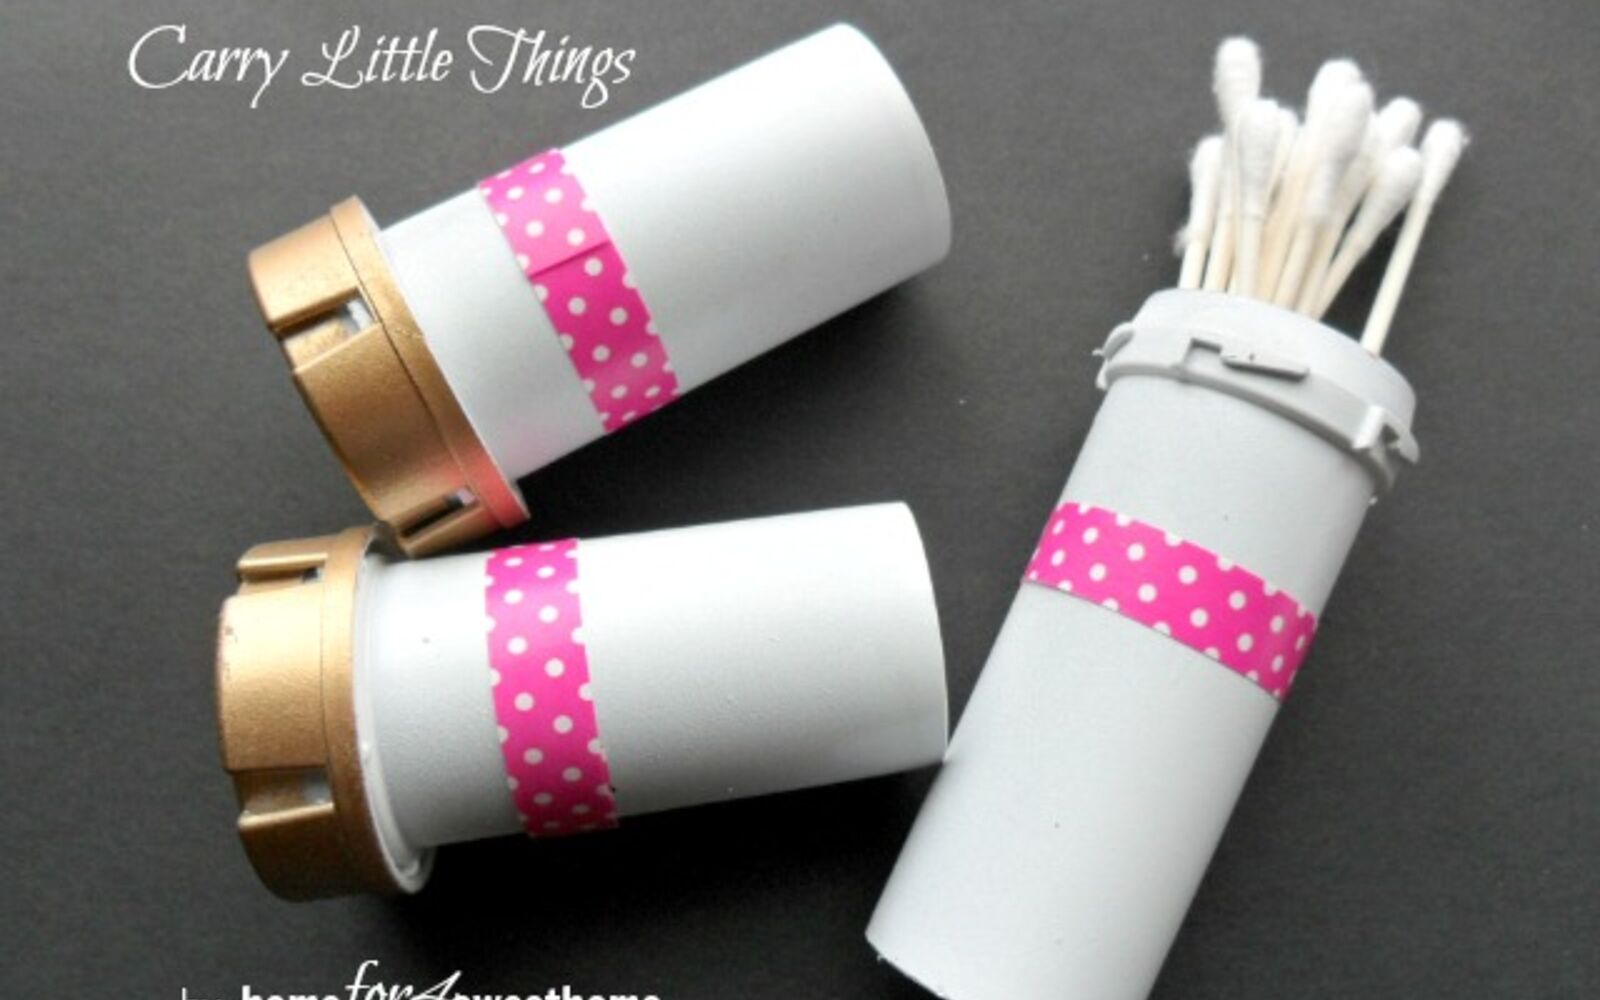 s 30 useful ways to reuse plastic bottles, Turn pill bottles into travel containers